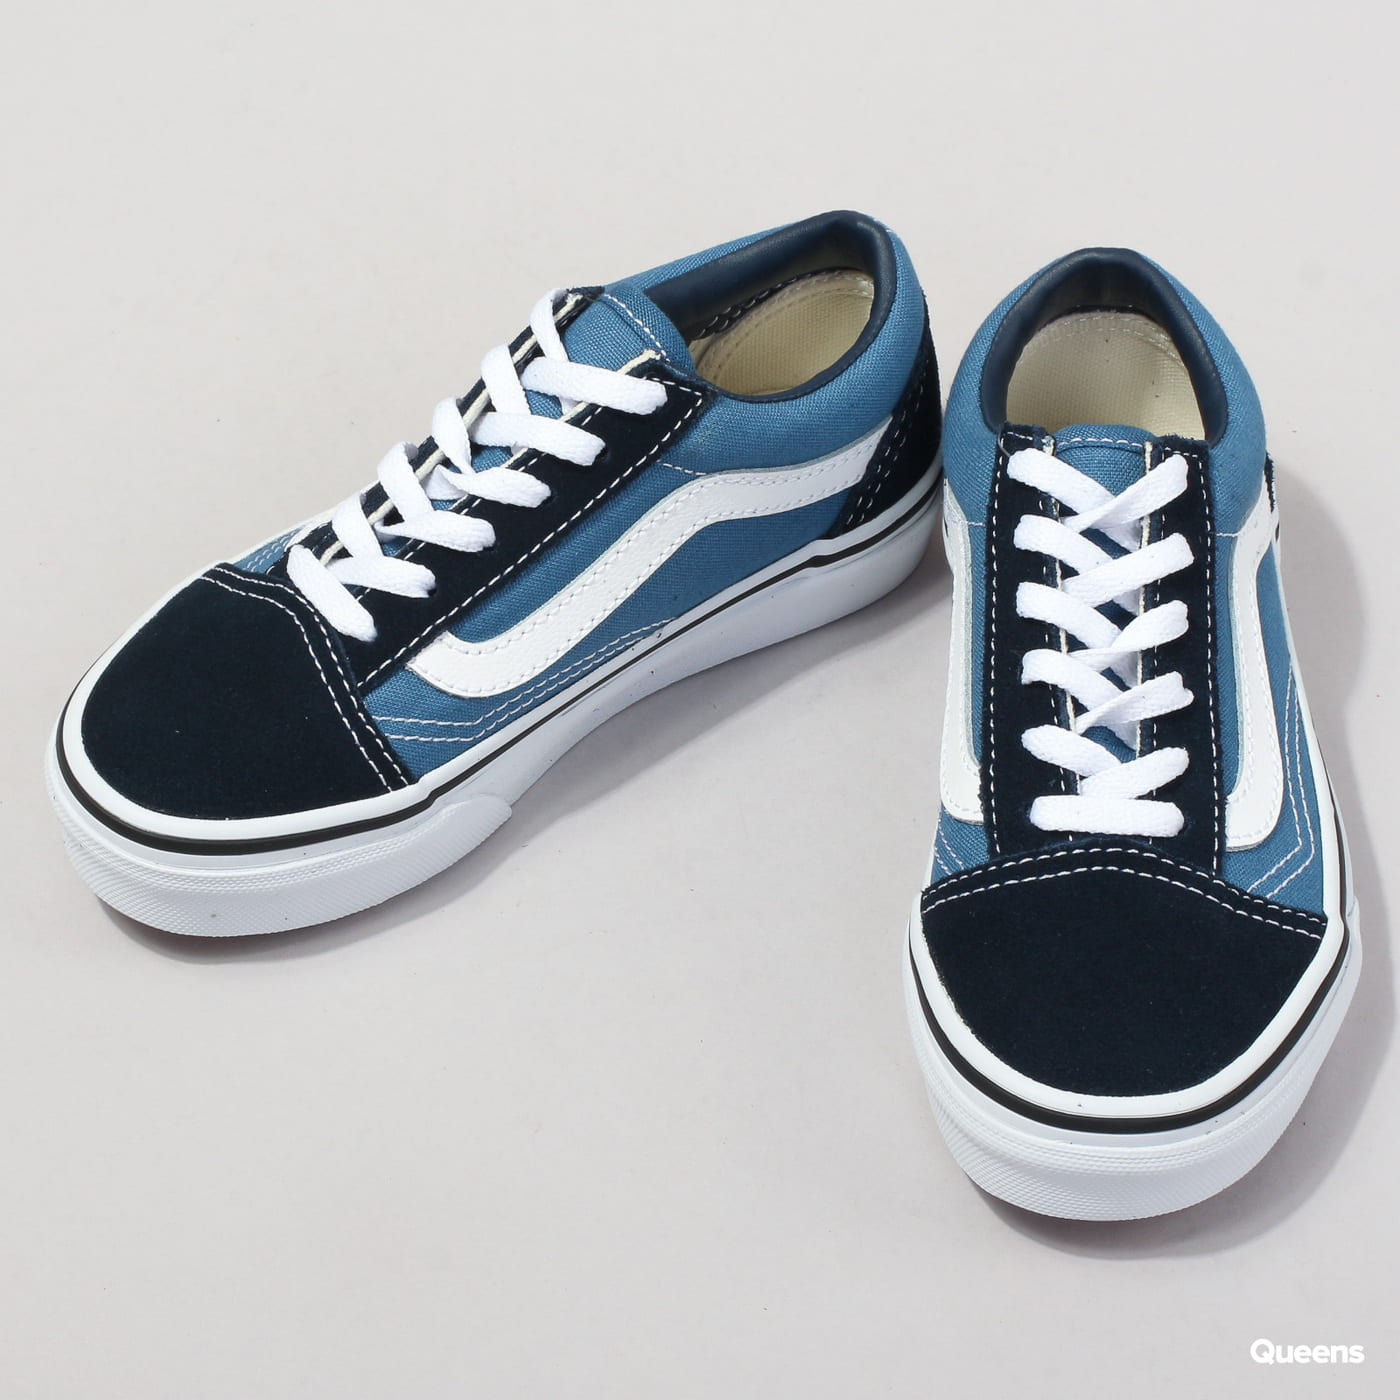 Vans Old Skool navy / true white